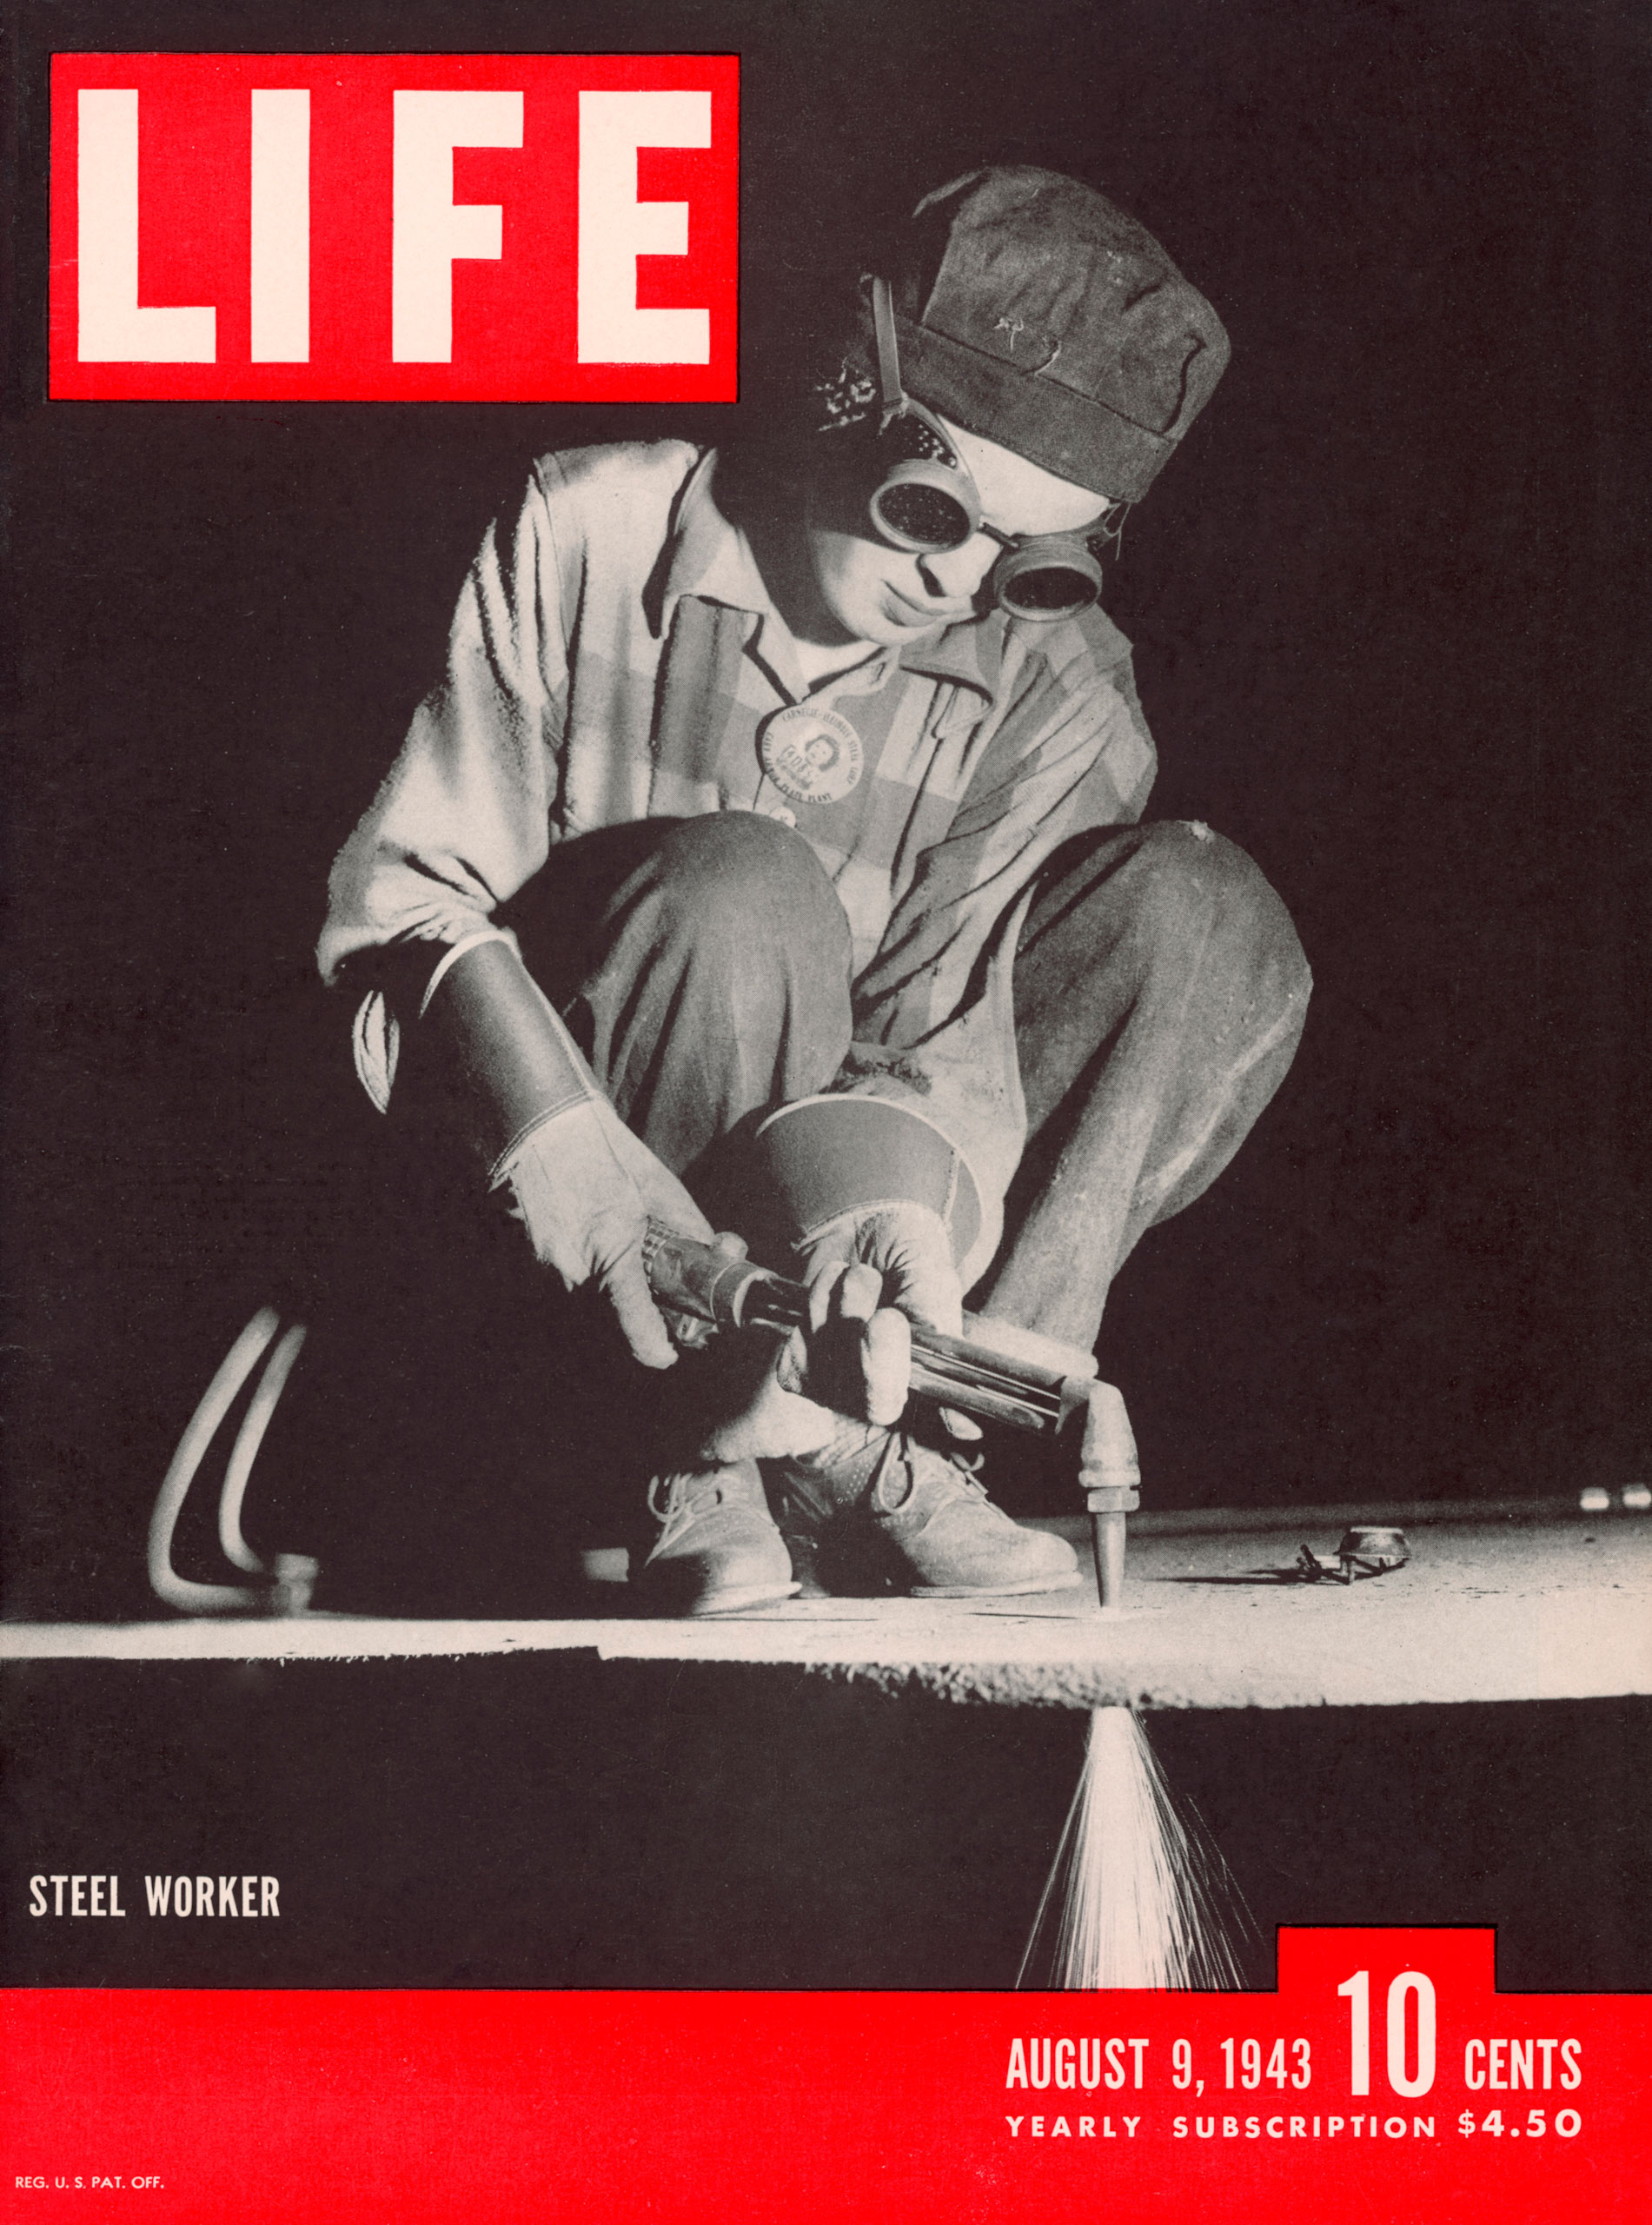 LIFE magazine cover, August 9, 1943.